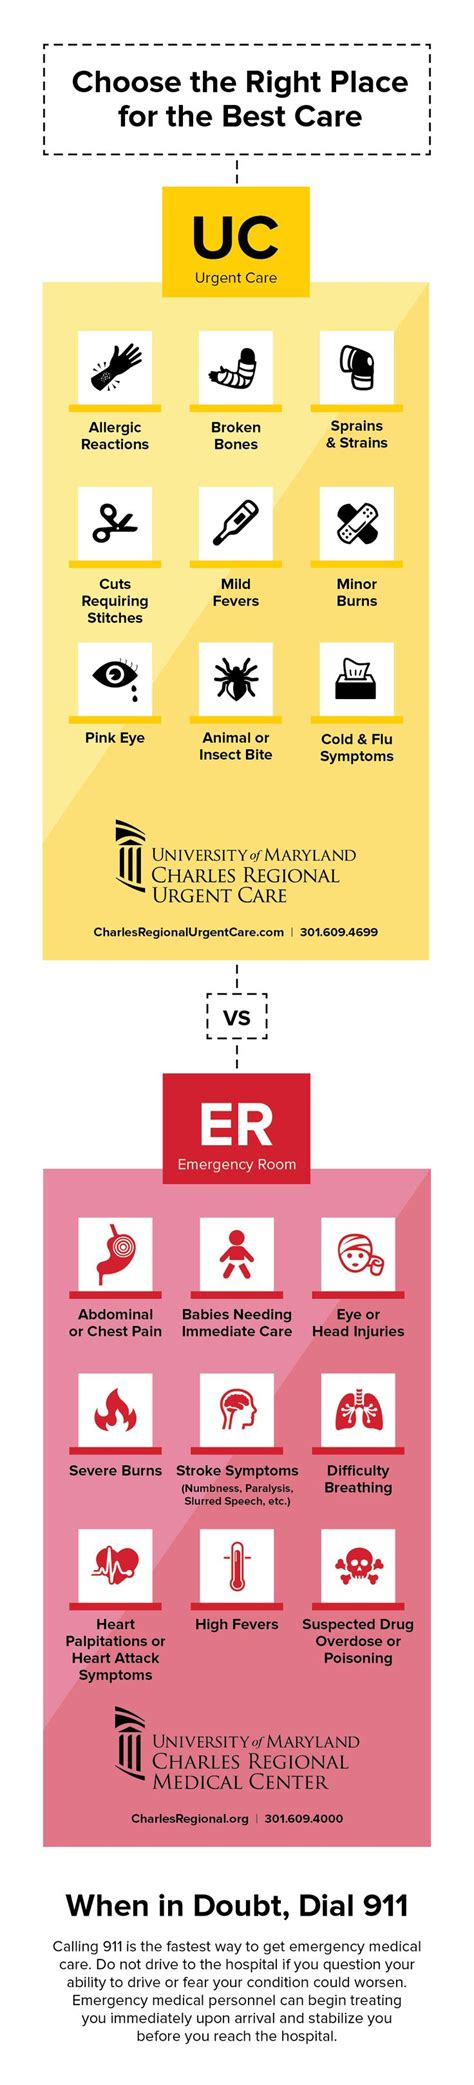 when should you go to emergency room room should i go to the emergency room rooms